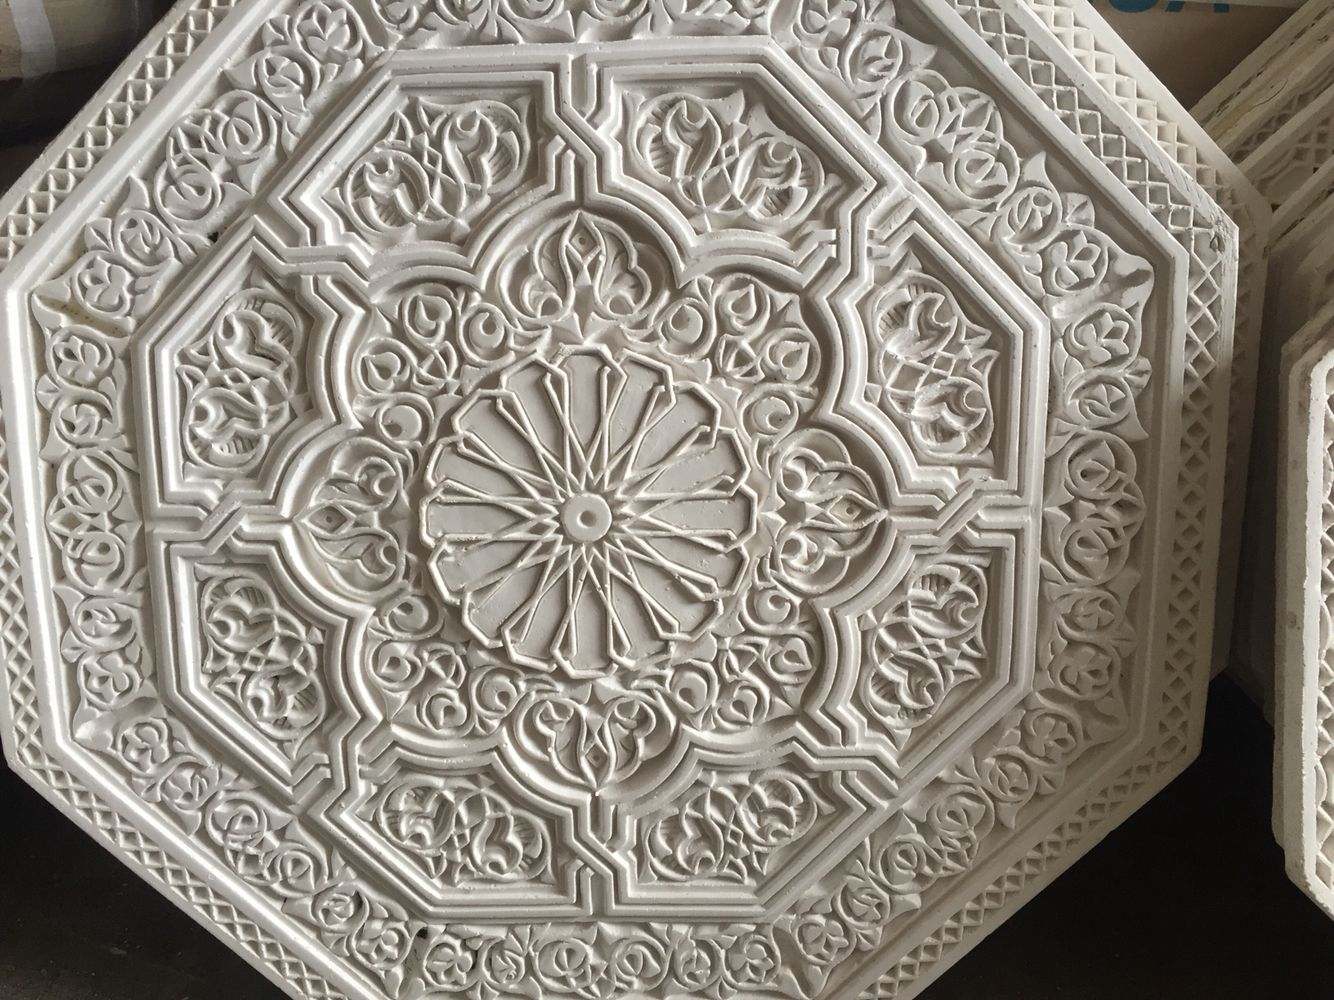 moorish moroccan islamic art ceiling medallion 300 to many styles just arrived - Ceiling Medallion